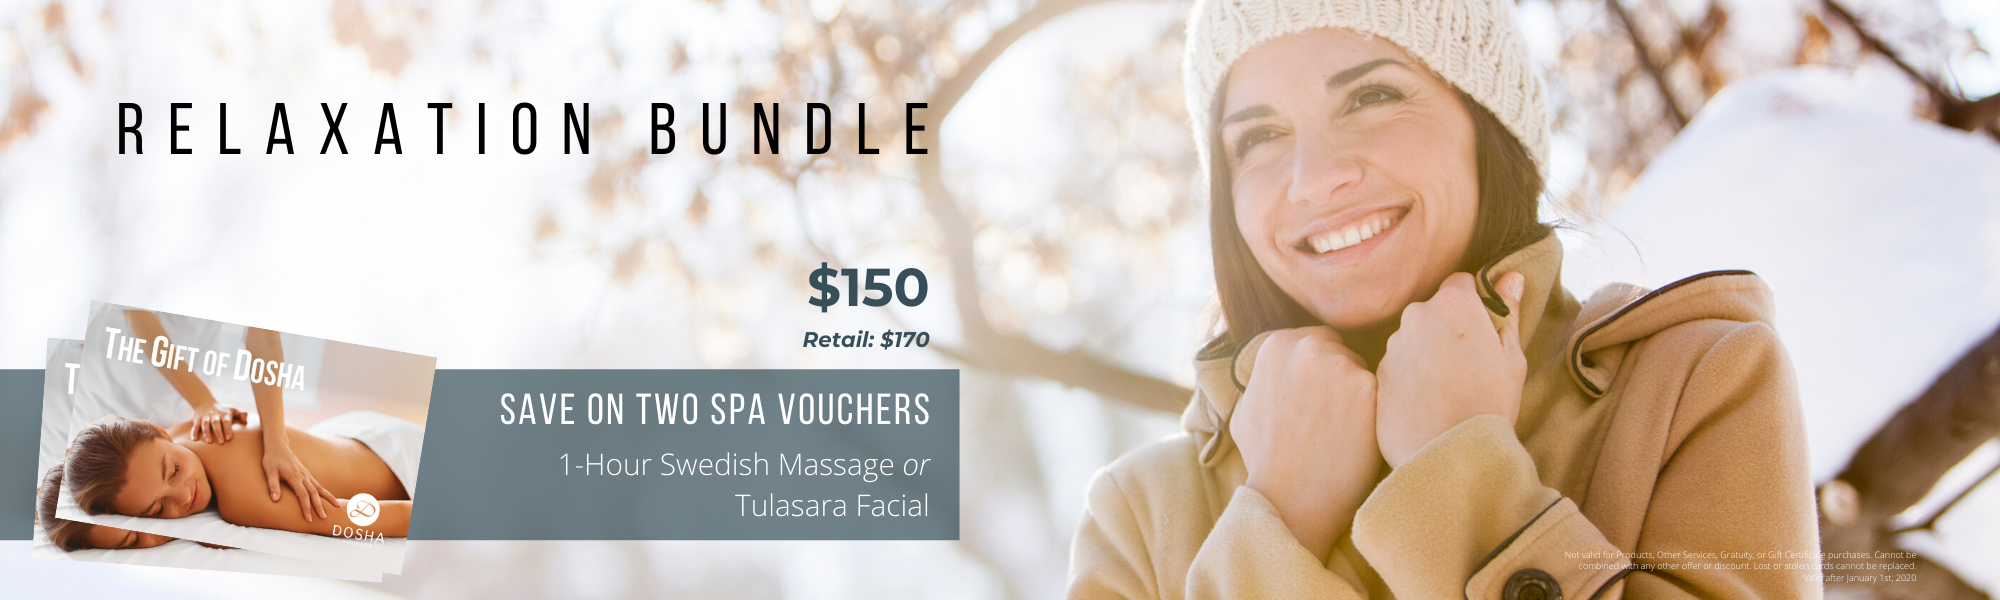 Gift the gift of dosha with our relaxation bundle for $150. Get your choice of two Tulasara facials or swedish massages. The perfect gift for anyone in your life.